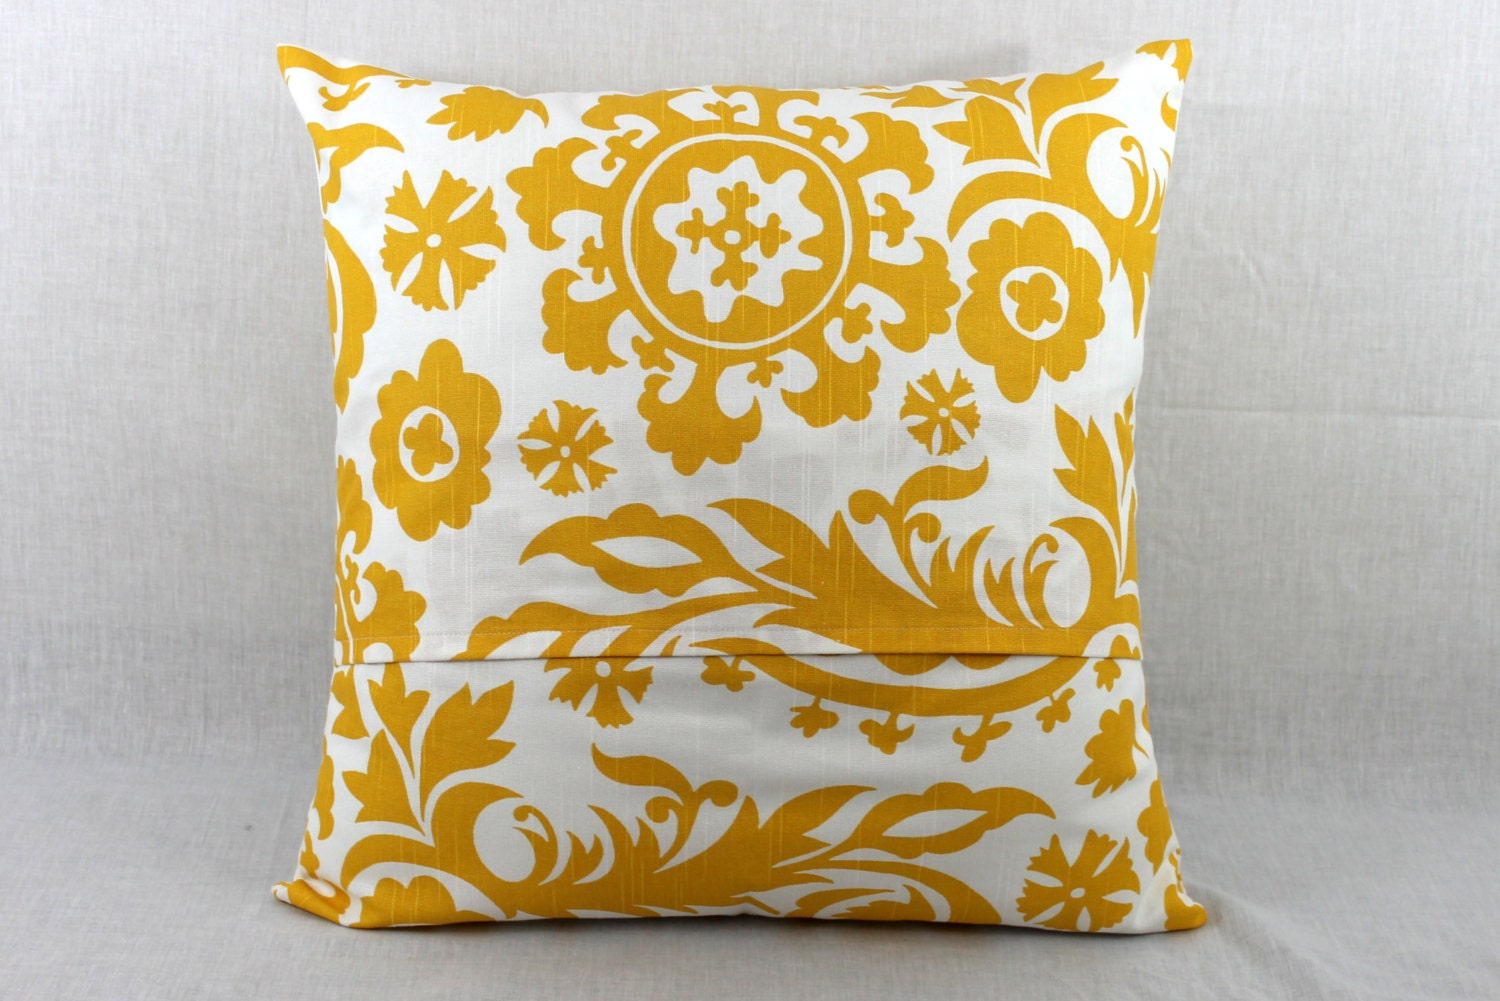 Pillow Covers 18 x 18 Yellow Couch Pillow Cover by  : ilfullxfull655198384h5wx from www.etsy.com size 1500 x 1001 jpeg 293kB